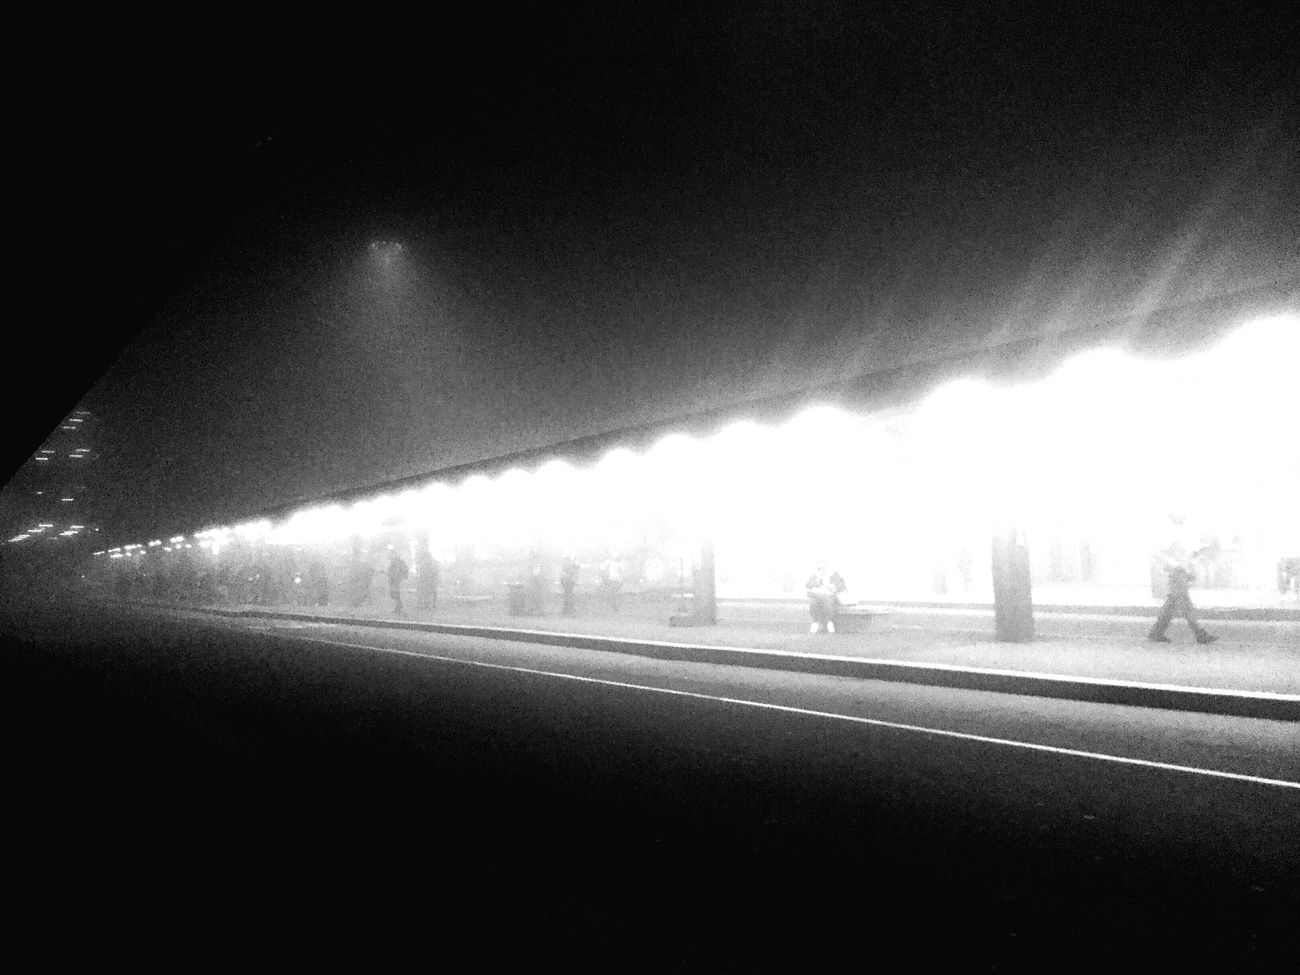 Malinchonic Landscape Foggy Night The Journey Dreamscapes & Memories Light Urban Geometry Blackandwhite The Places I've Been Today Light At The End Of The Tunnel At The End Of The Day